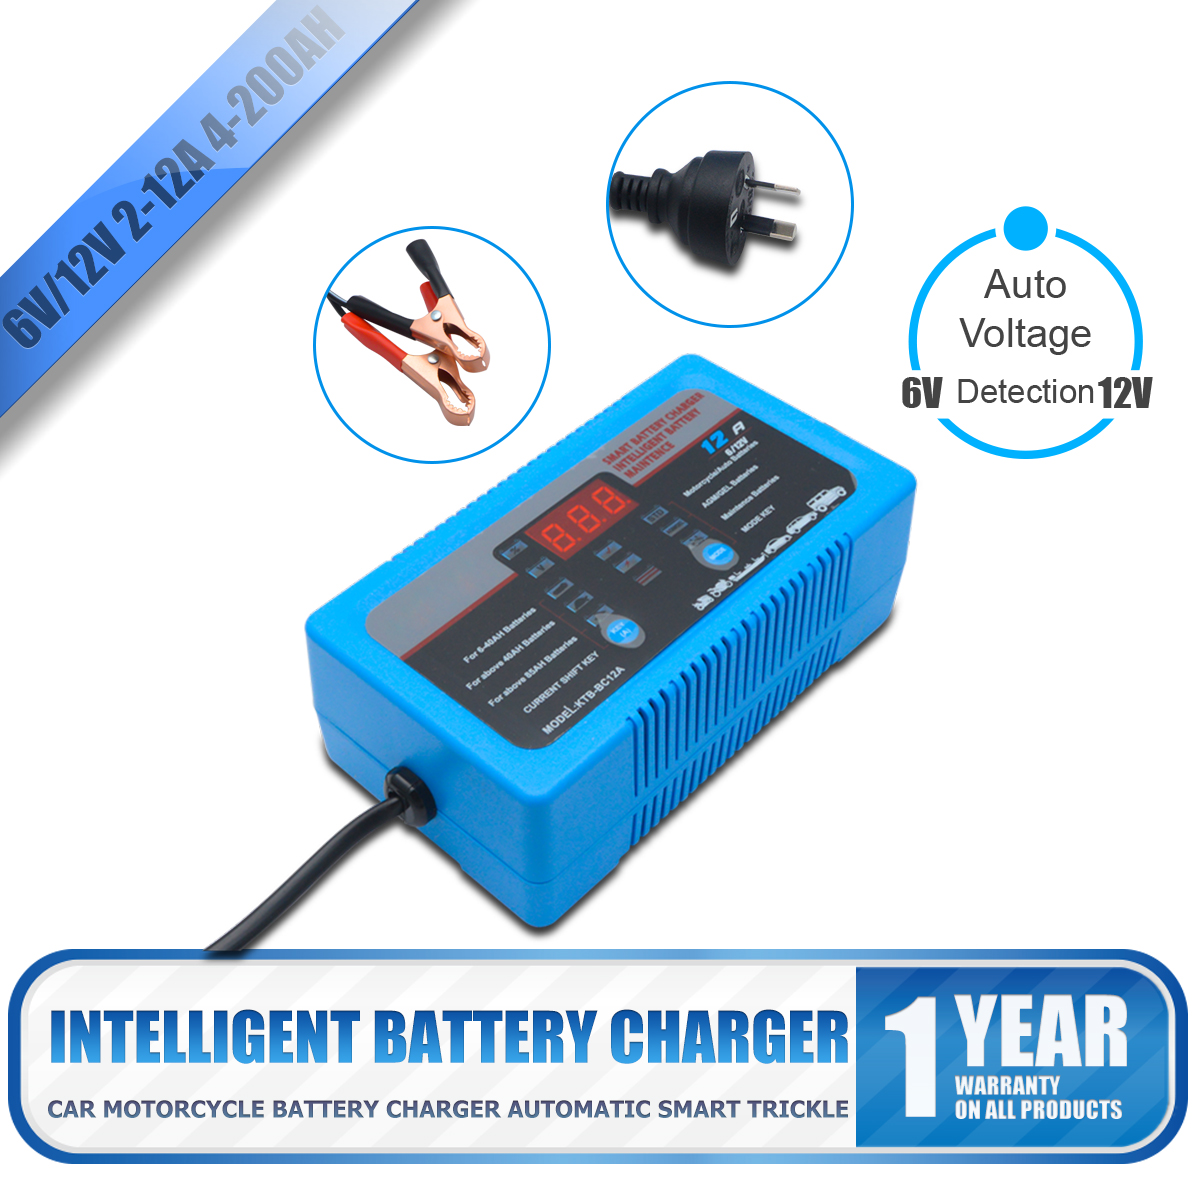 6v 12v 2a 8a 12a Smart Battery Charger For Car Motorcycle 4 200ah Failure Detector The Circuit Pulse Repair Ebay